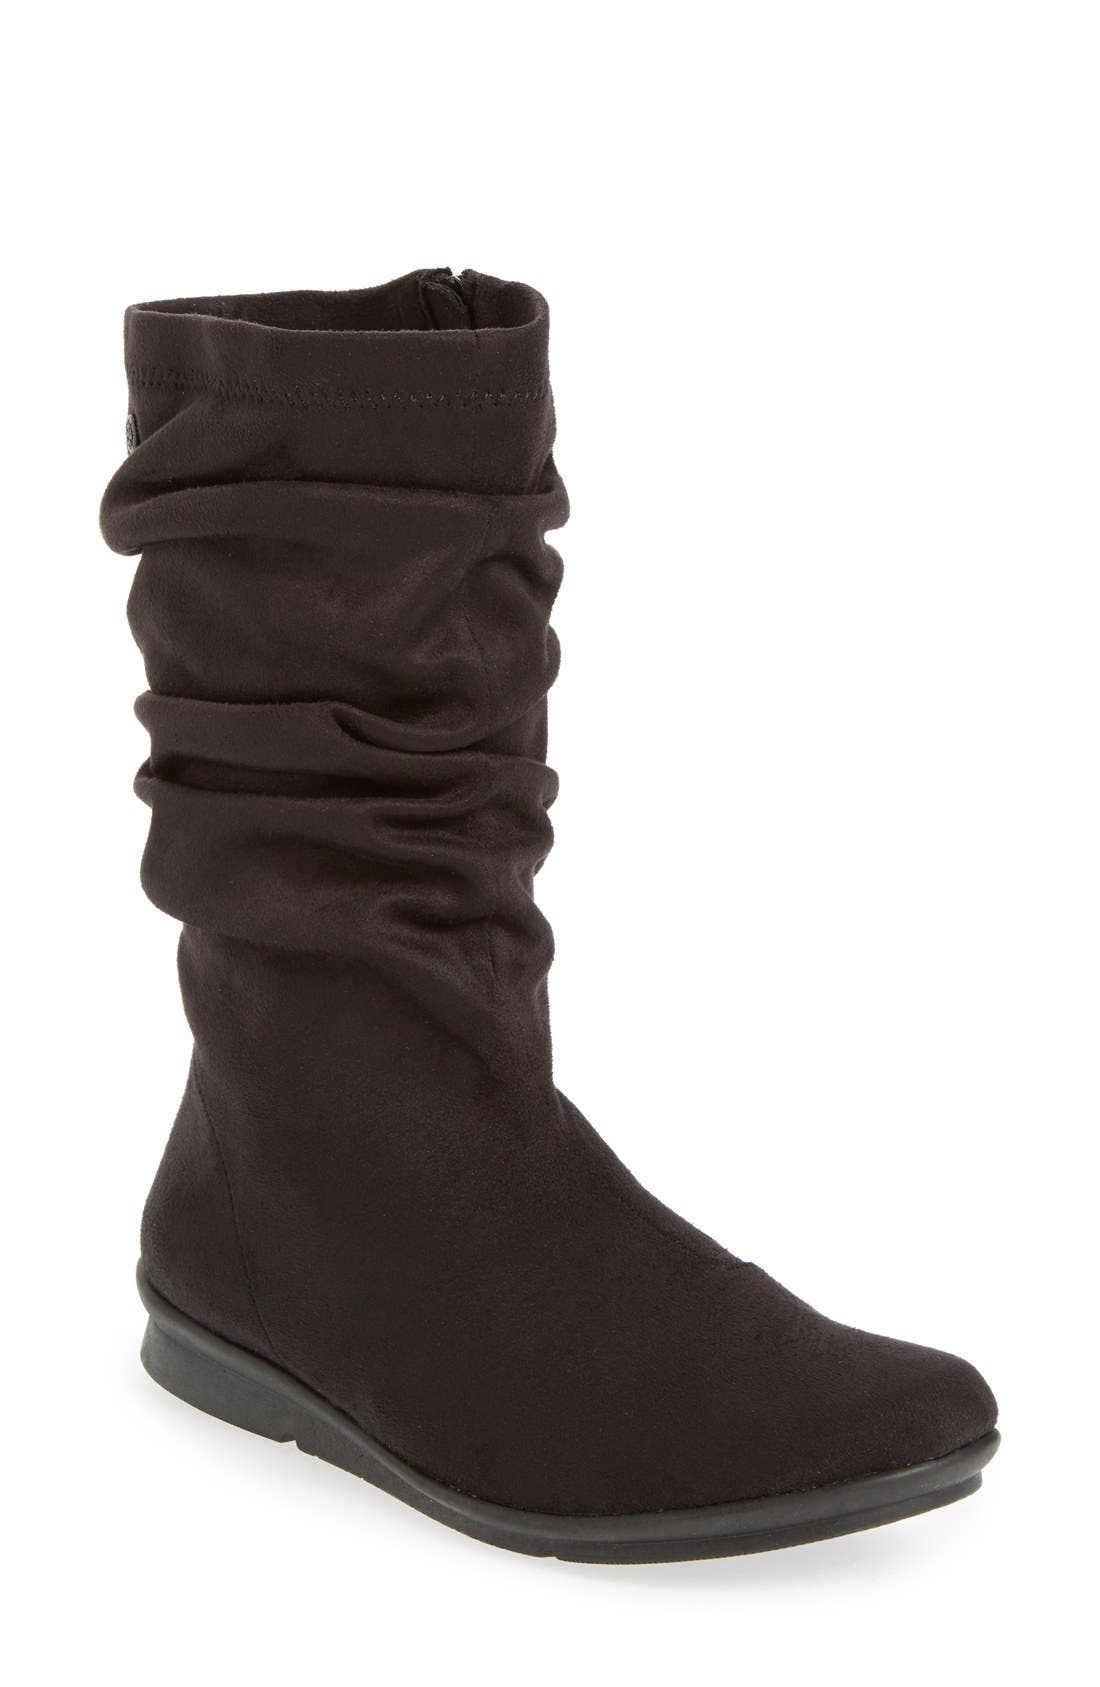 BUSSOLA Concord Ruched Boot, Main, color, 001